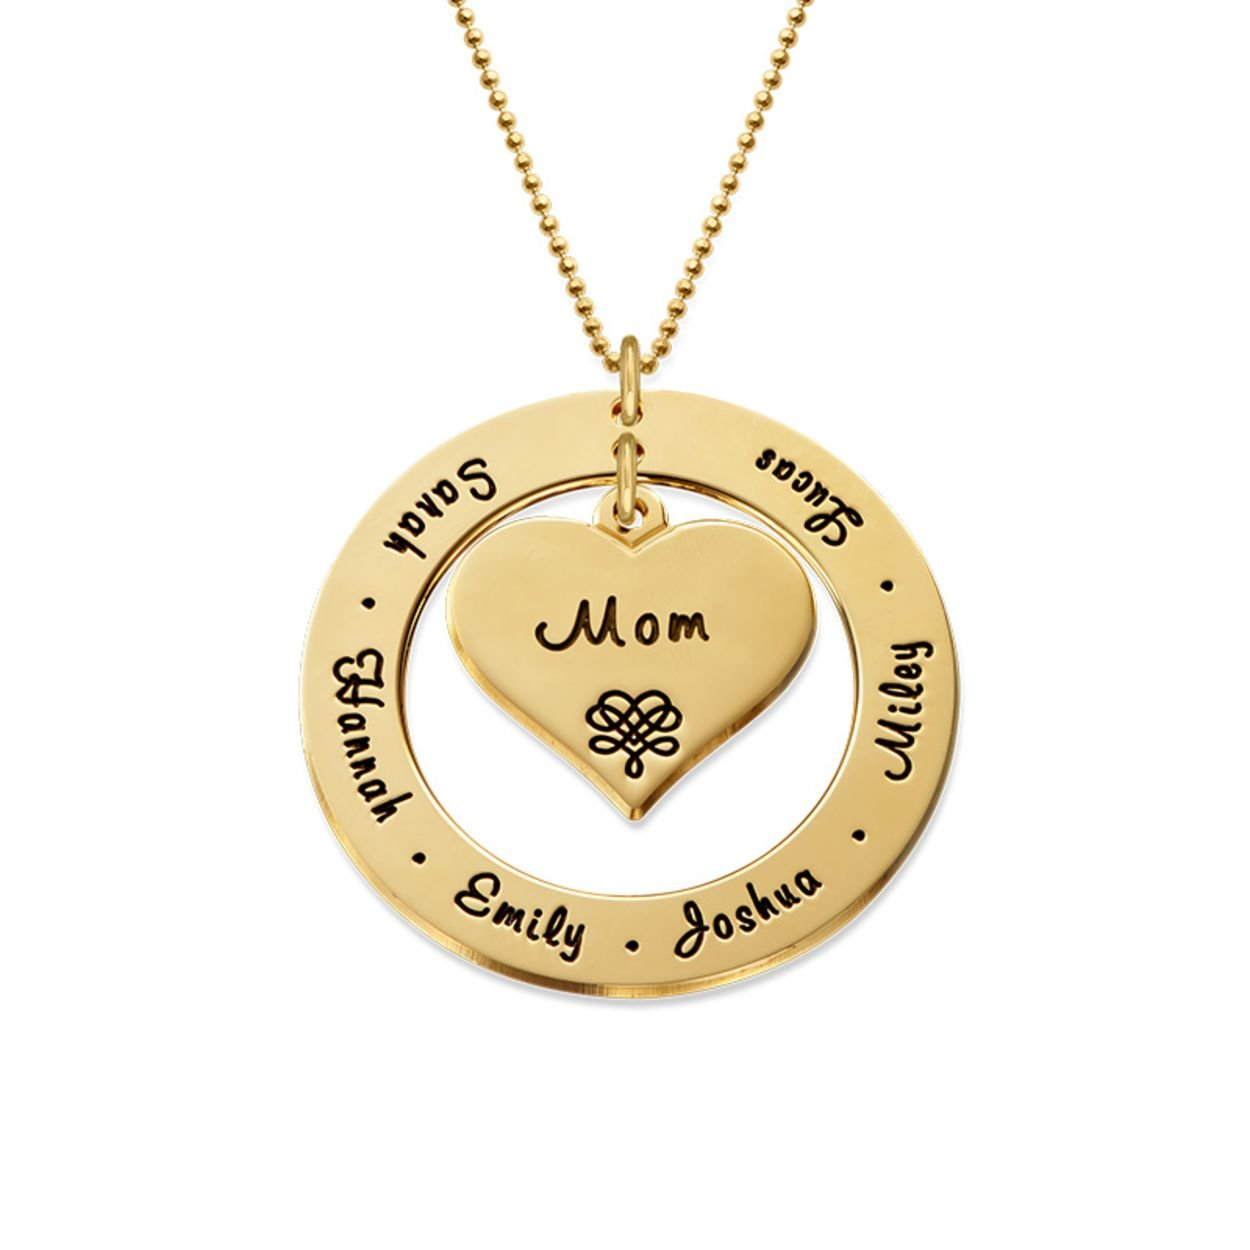 Grandmother / Mother Necklace - Personalized Gold Engraving with Names - Gift for Her by My Name Necklace (Image #2)